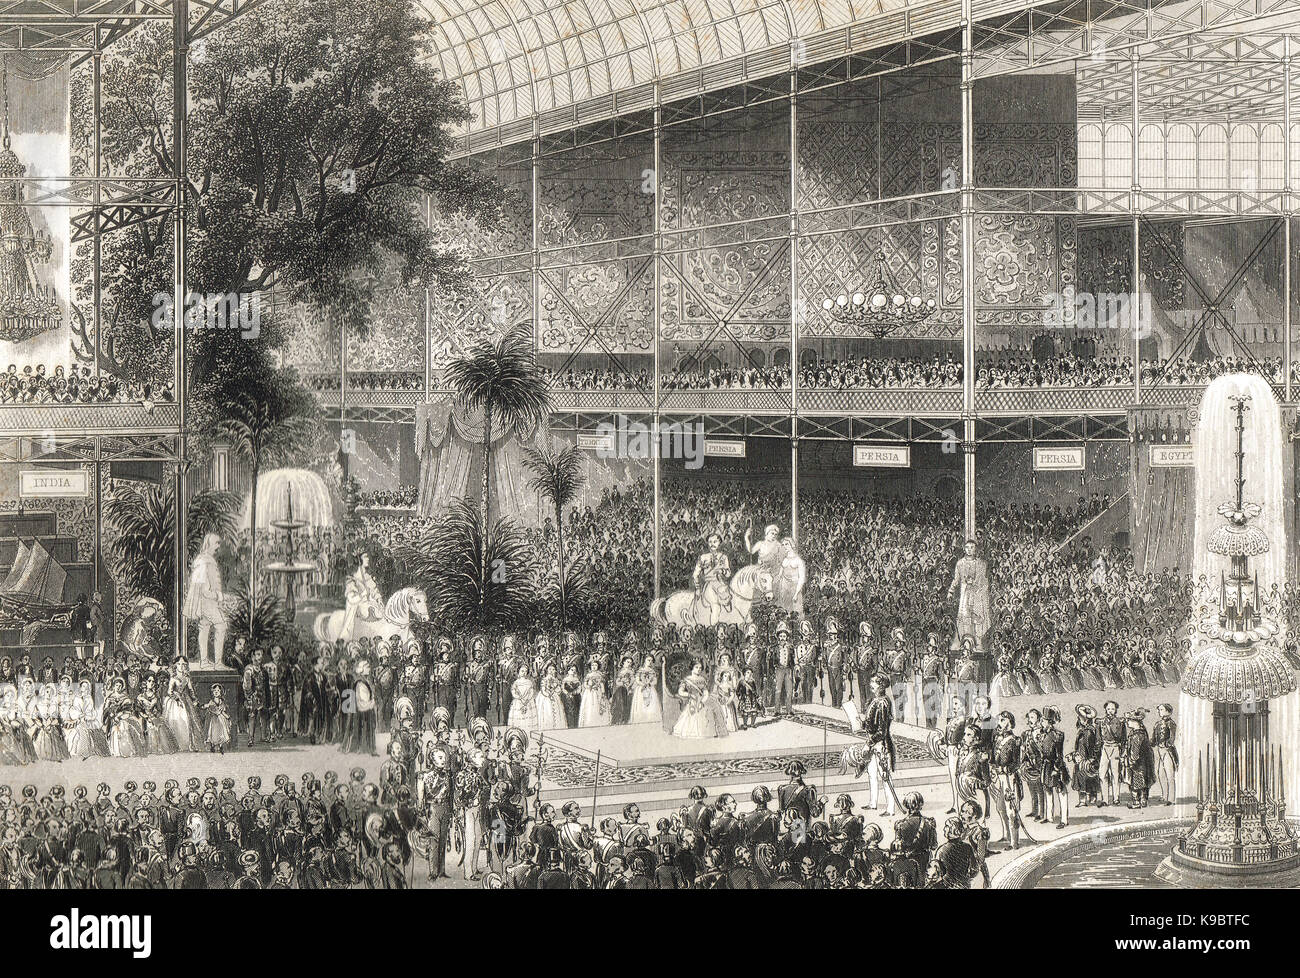 Opening of the Great Exhibition of 1851 - Stock Image